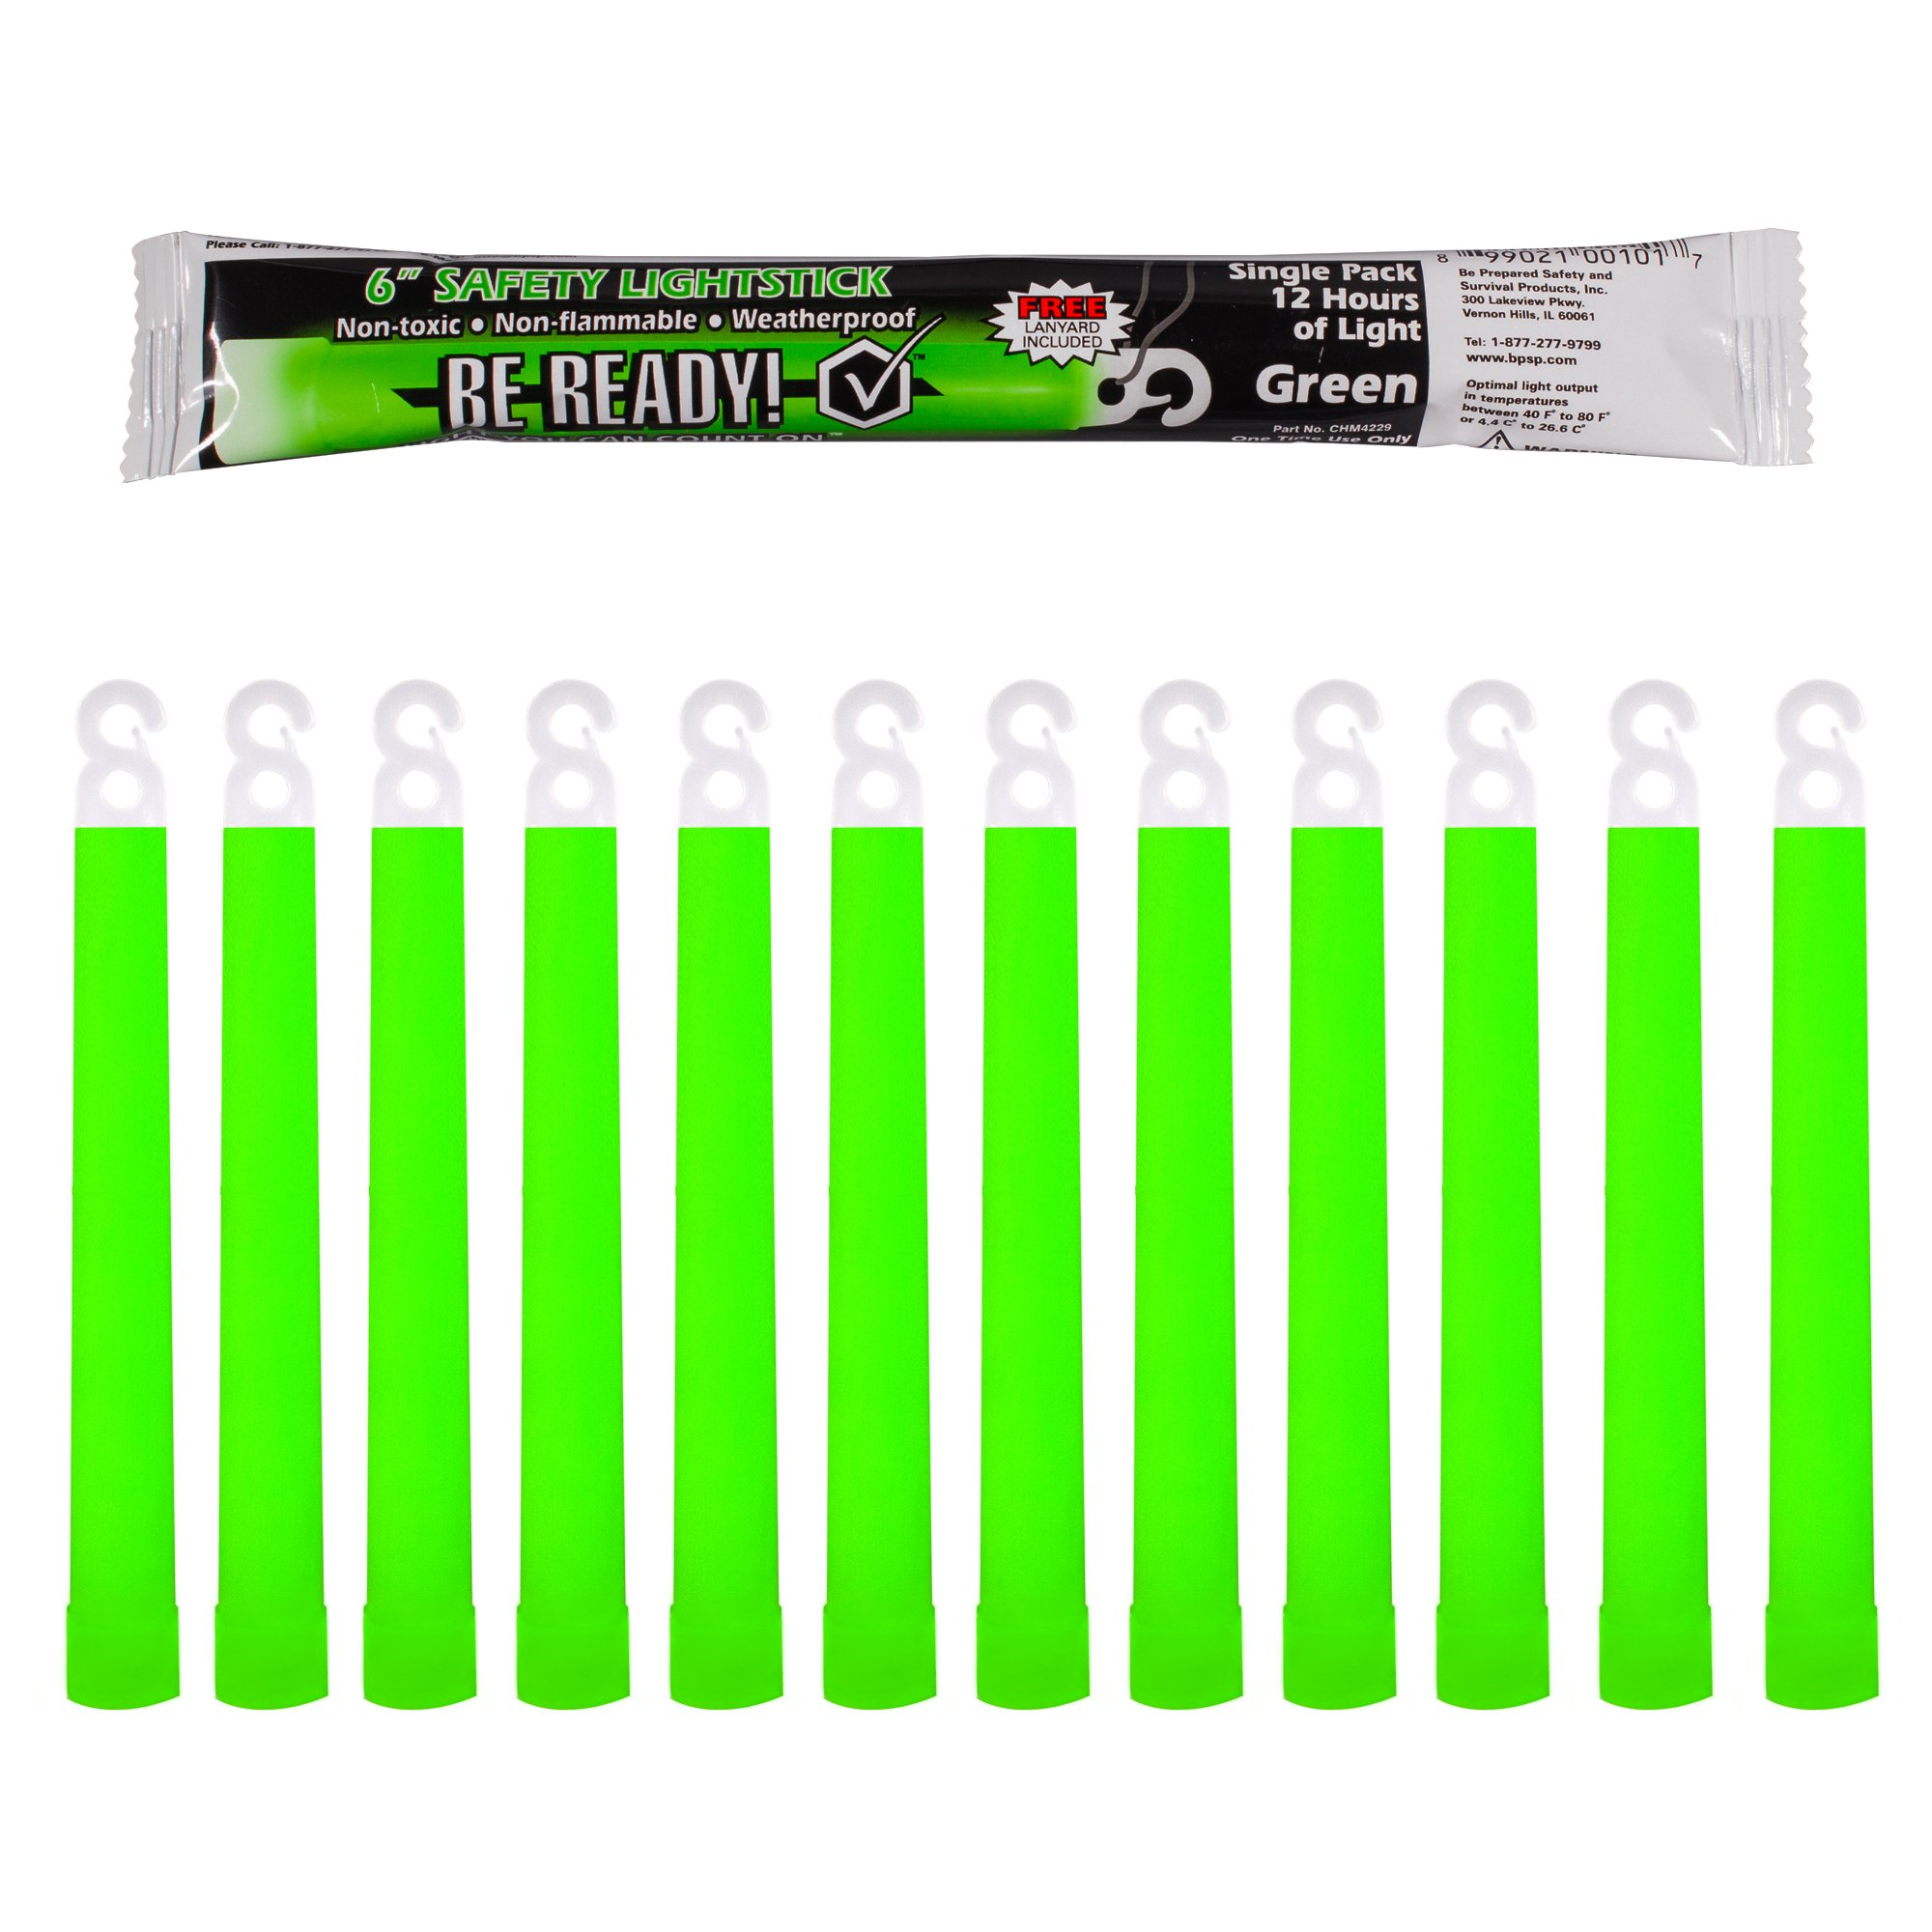 Be Ready - Industrial 12 hour Illumination Emergency Safety Chemical Light Glow Sticks (36 Pack Green)